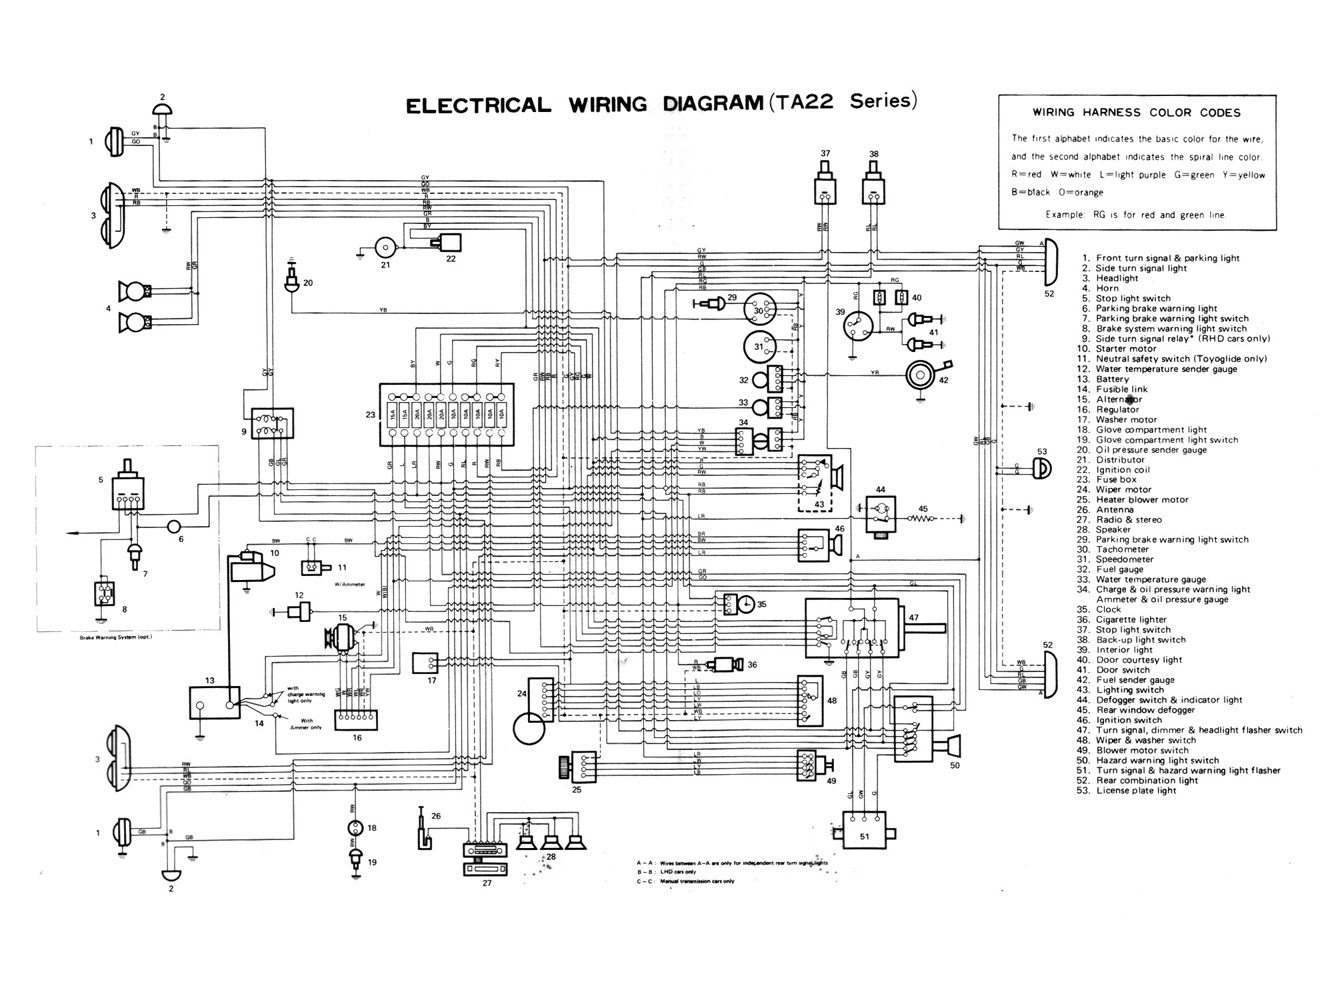 Toyota Electrical Wiring Diagram Will Be A Thing 1992 Camry Guide Handbook Celica 28 Images Auris Workbook